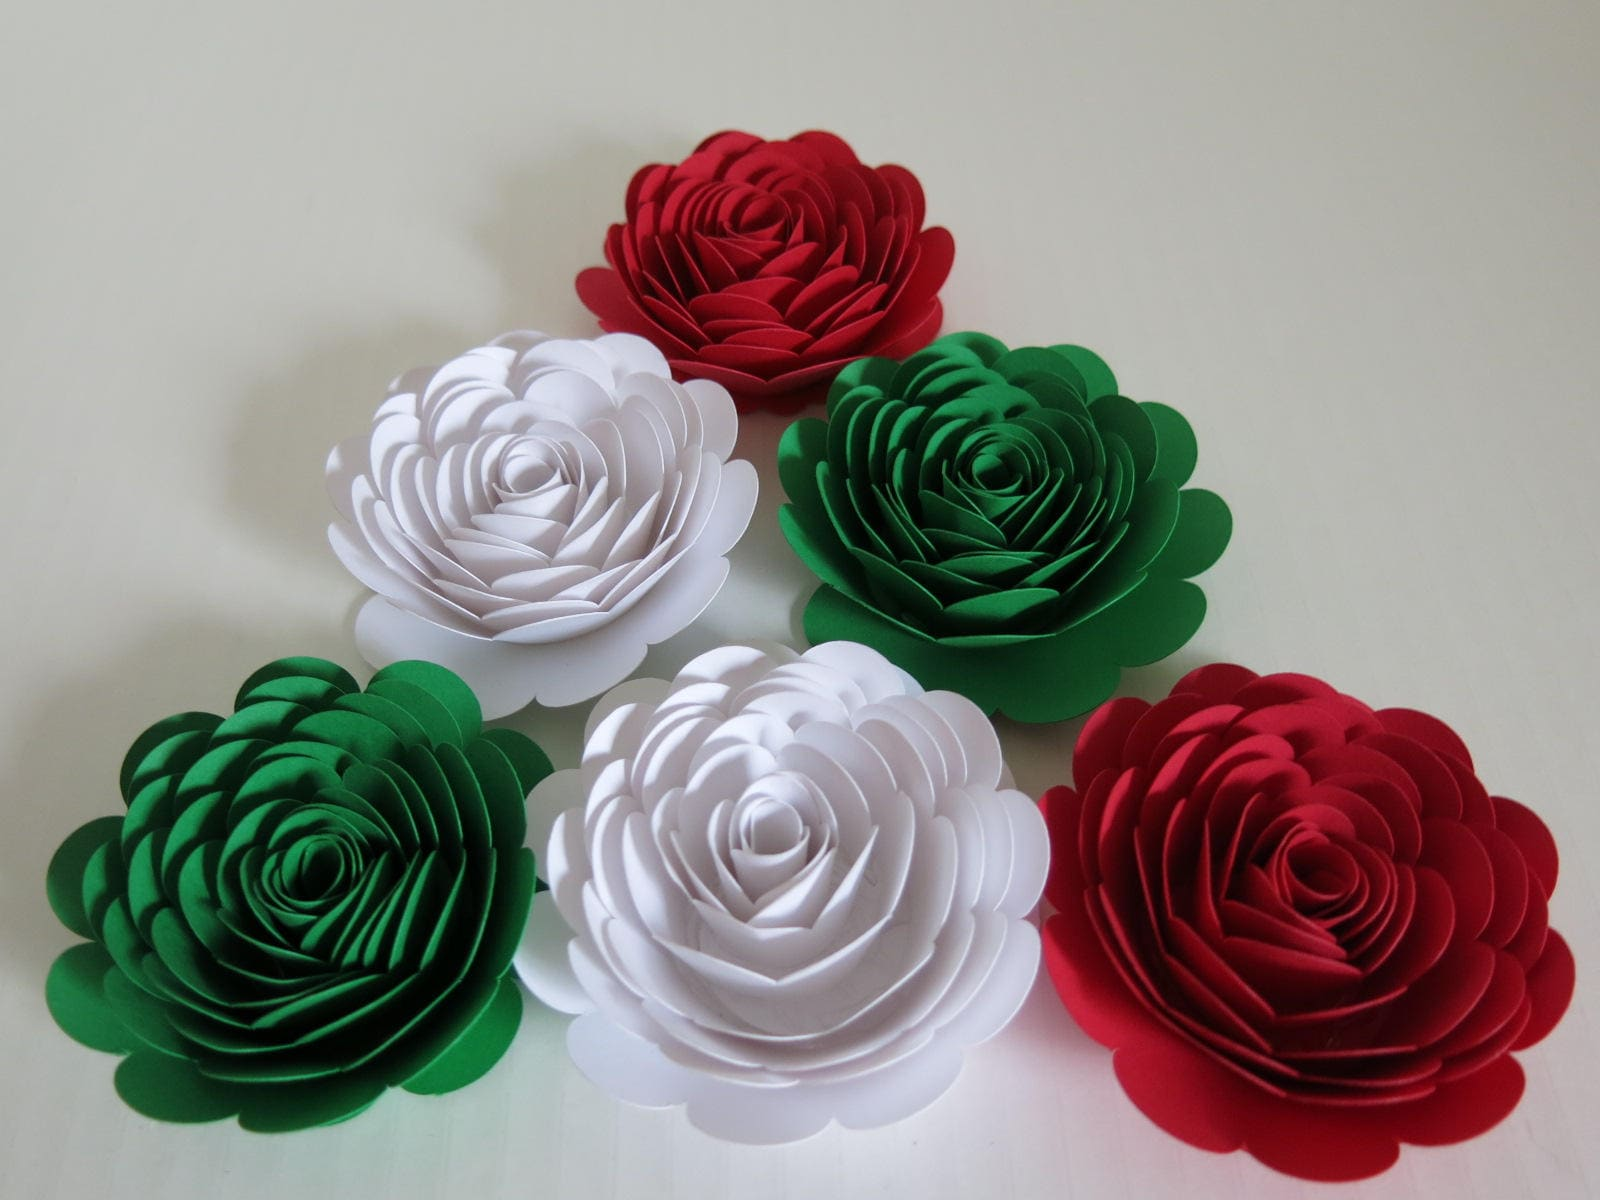 Red White Green Mexican Color Roses 3 Paper Flowers Set Of 6 Wedding Flowers Bridal Shower Decor Italy Italian Theme Tea Party Decor